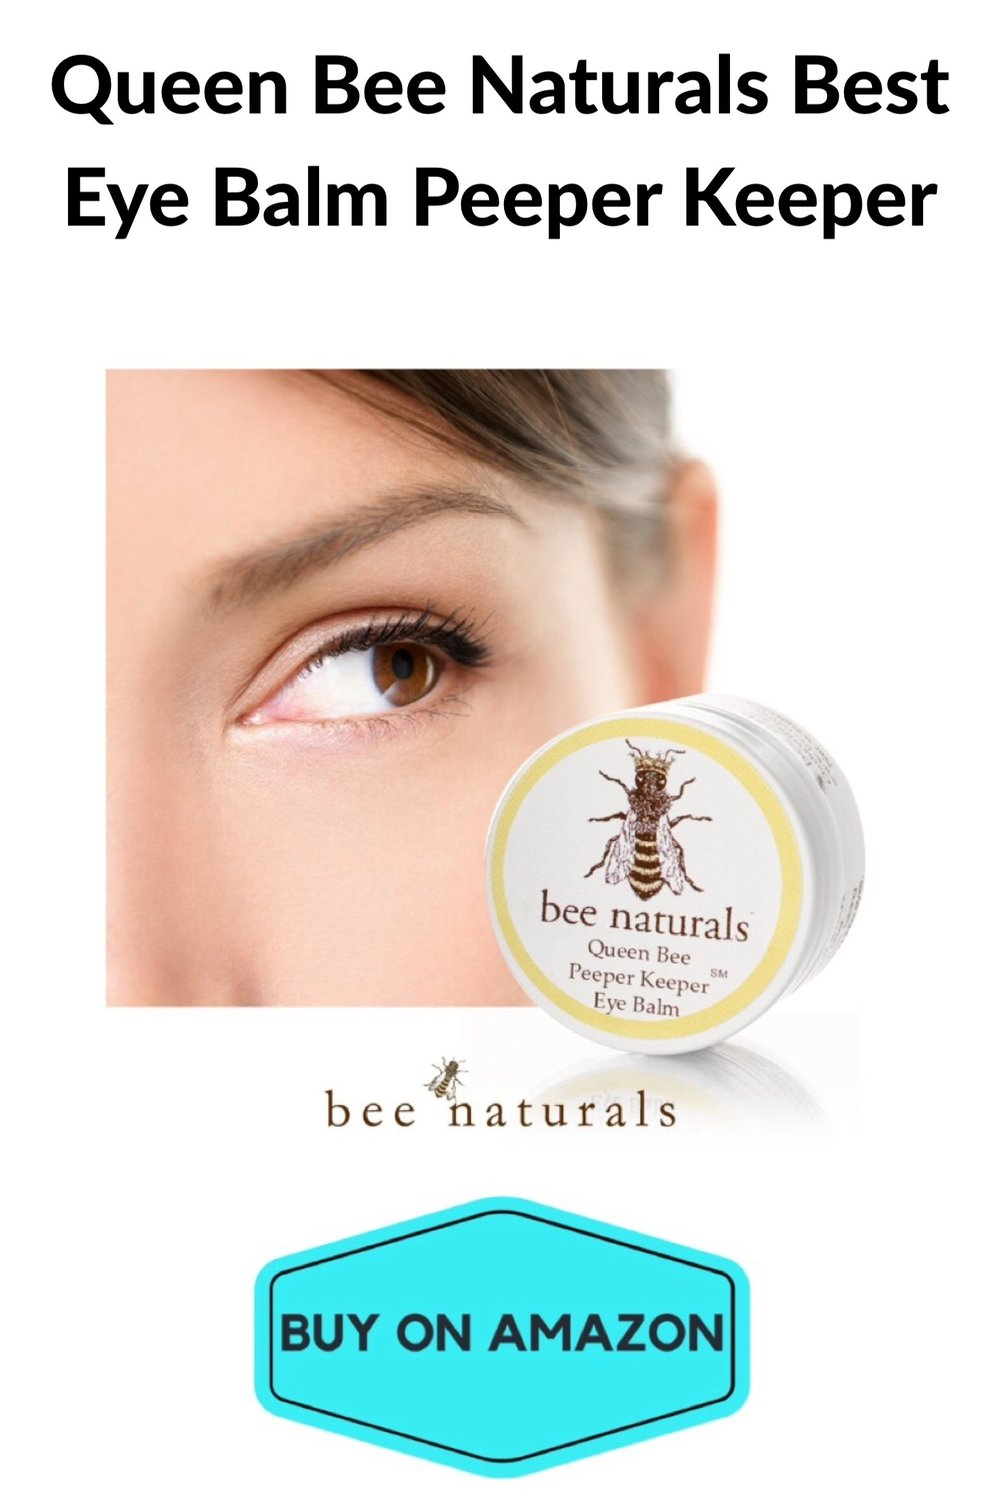 Queen Bee Naturals Eye Balm Peeper Keeper